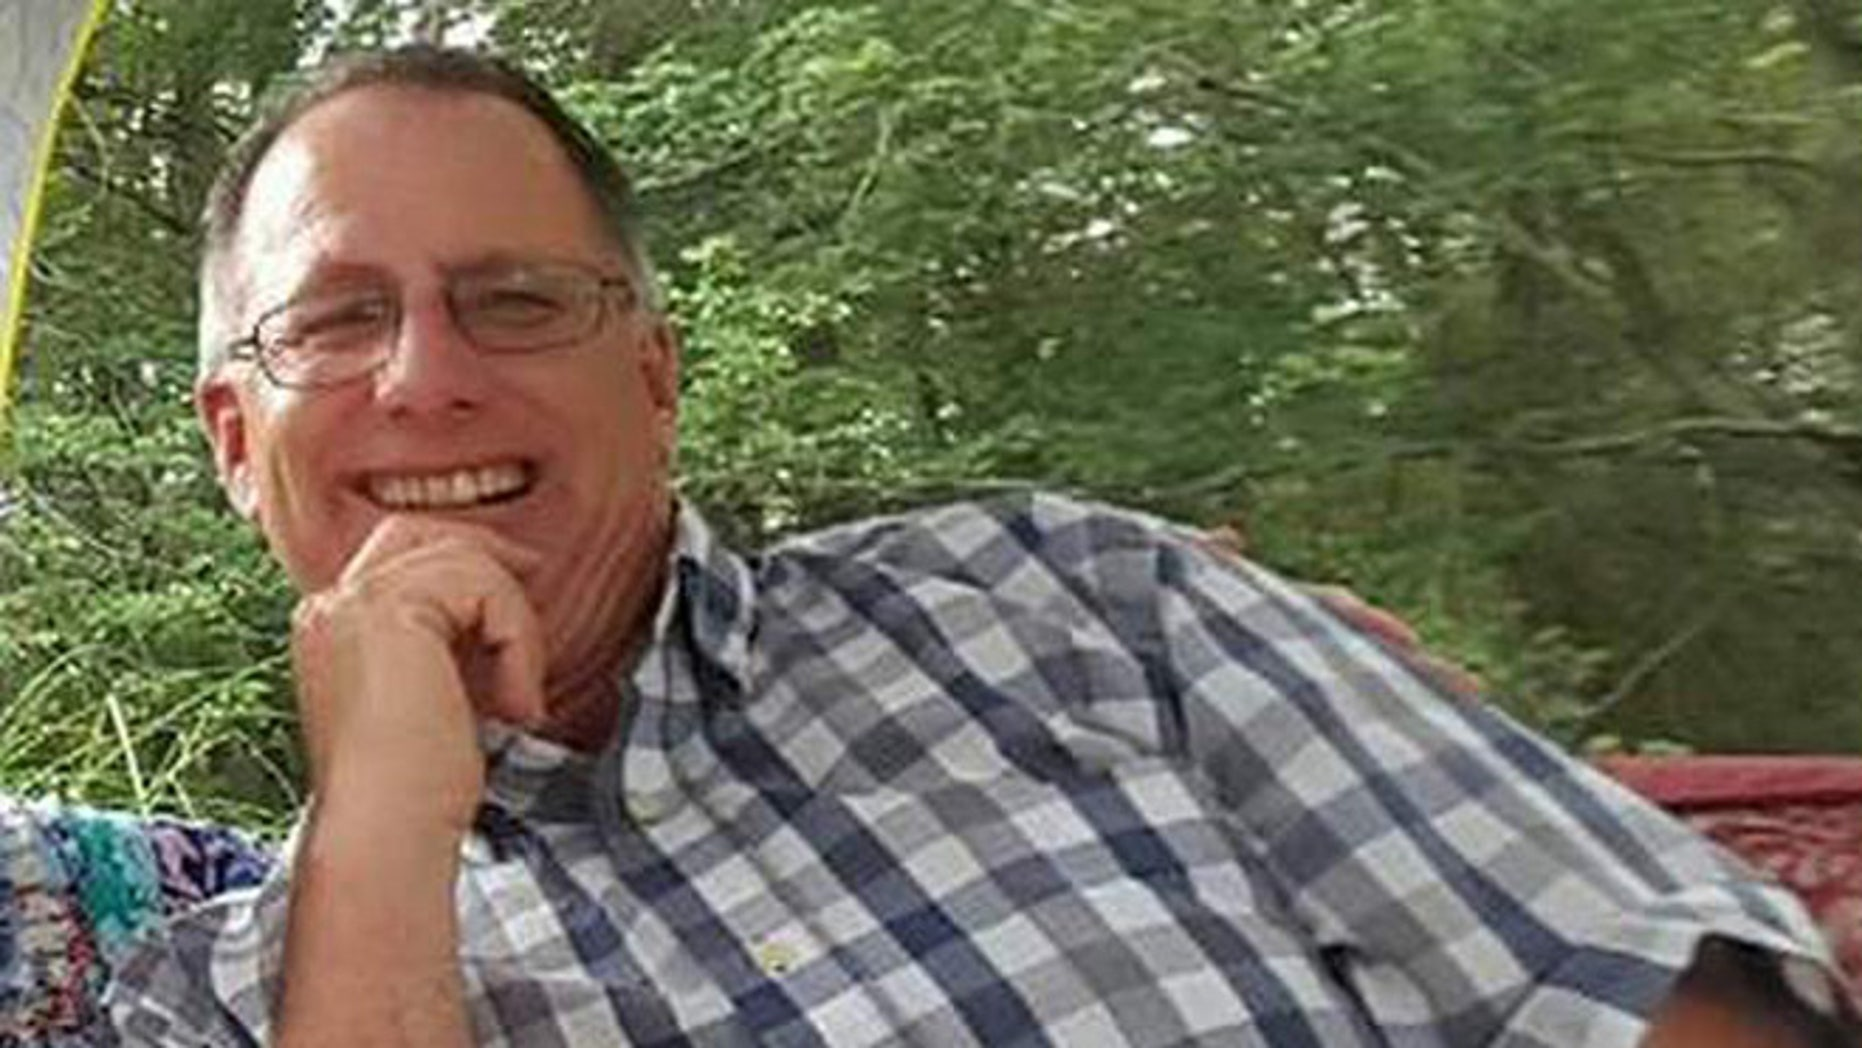 George Heath, a 56-year-old teacher in New Bedford, Mass., was fatally stabbed trying to help victim of mall attack.